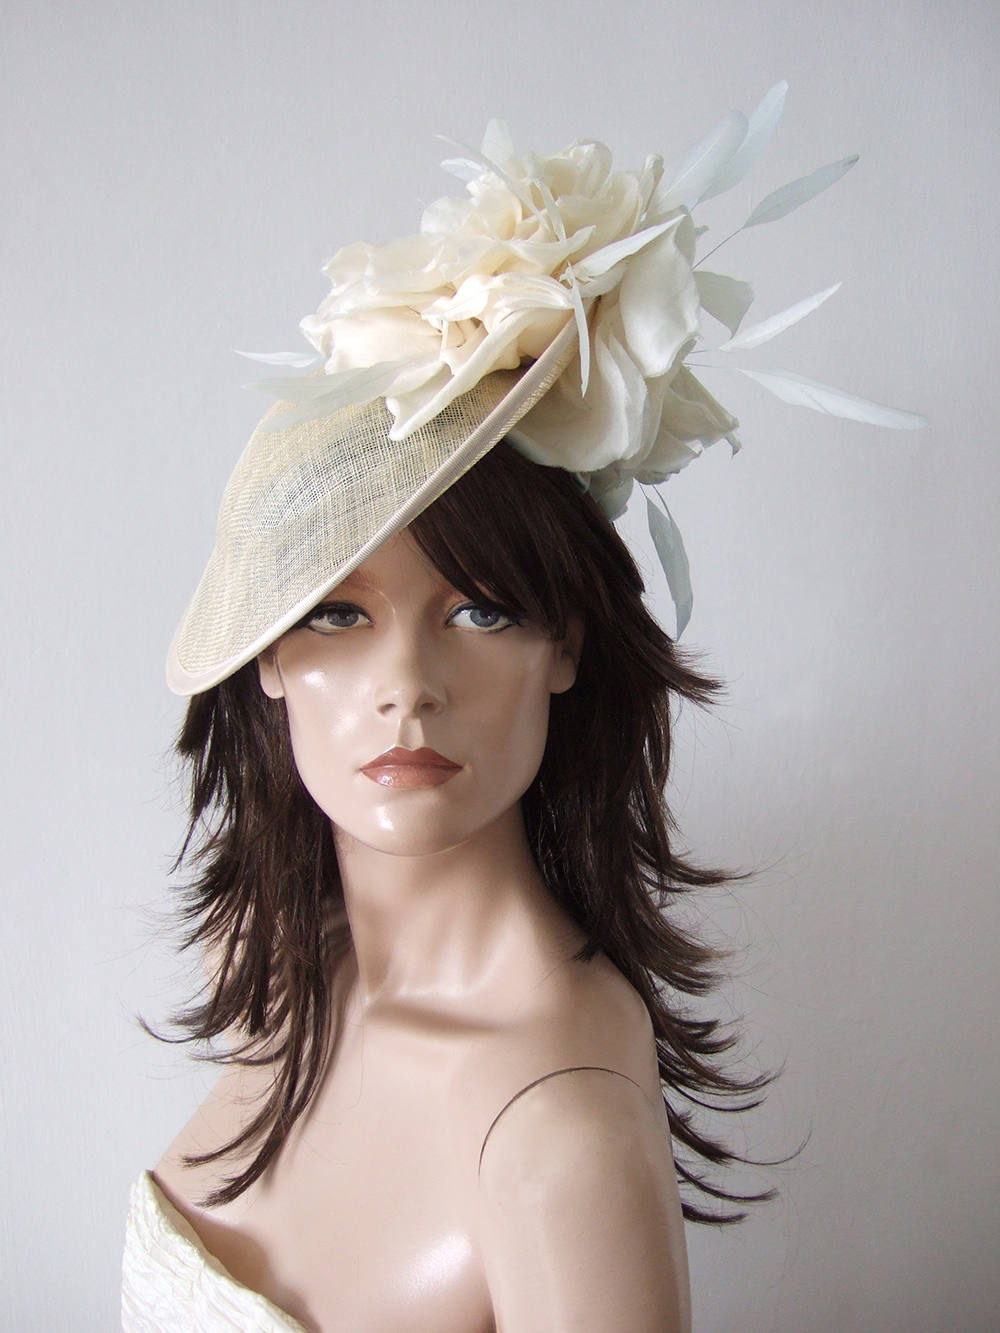 Saucer Style Hats for Hire UK. Hats for Summer Wedding Guests UK. Cream Royal Ascot Hats 2021. Designer Hats for Hire 2020. Wedding Hats for Hire UK 2021. Hats for Royal Ascot 2021. Cream Mother of the Bride Saucer Hats 2021. Mother of the Groom Hats 2020. Mother of the Bride Hat Hire 2021. Summer Wedding Fascinators 2021. Best Designer Hats 2020.